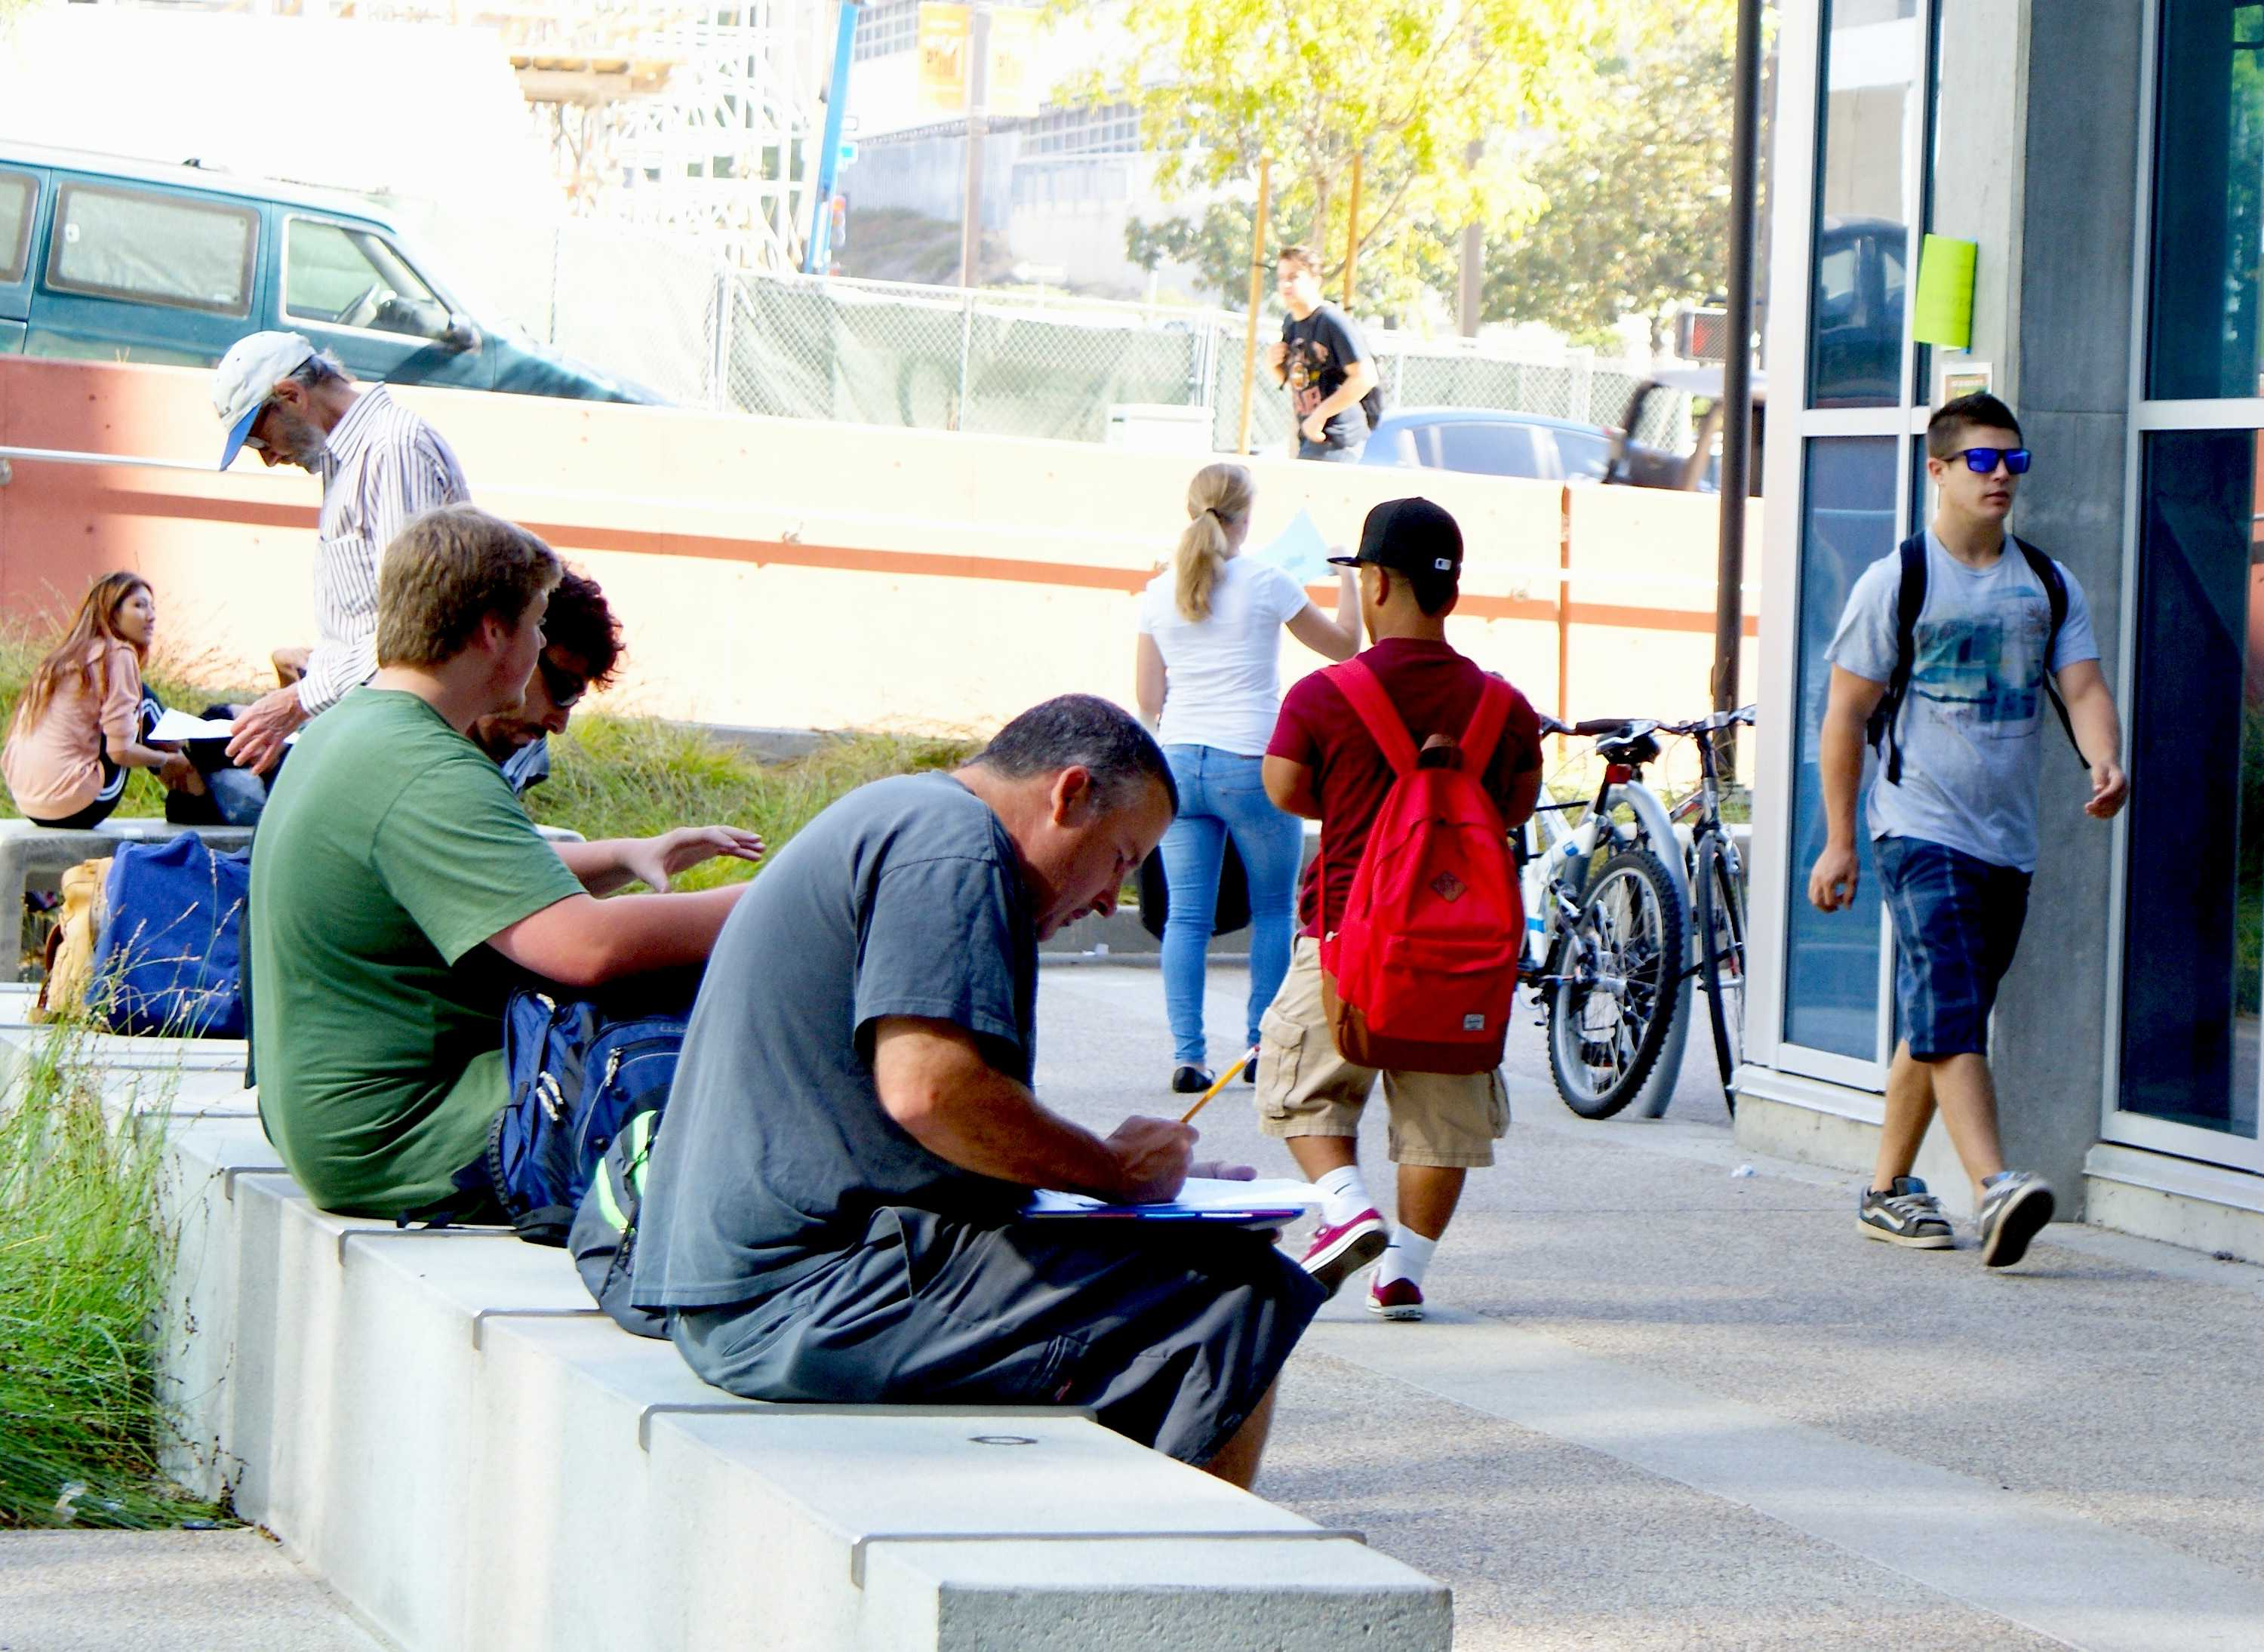 Students convene inside the MS Building courtyard on Aug. 21. Torrey Spoerer, City Times.